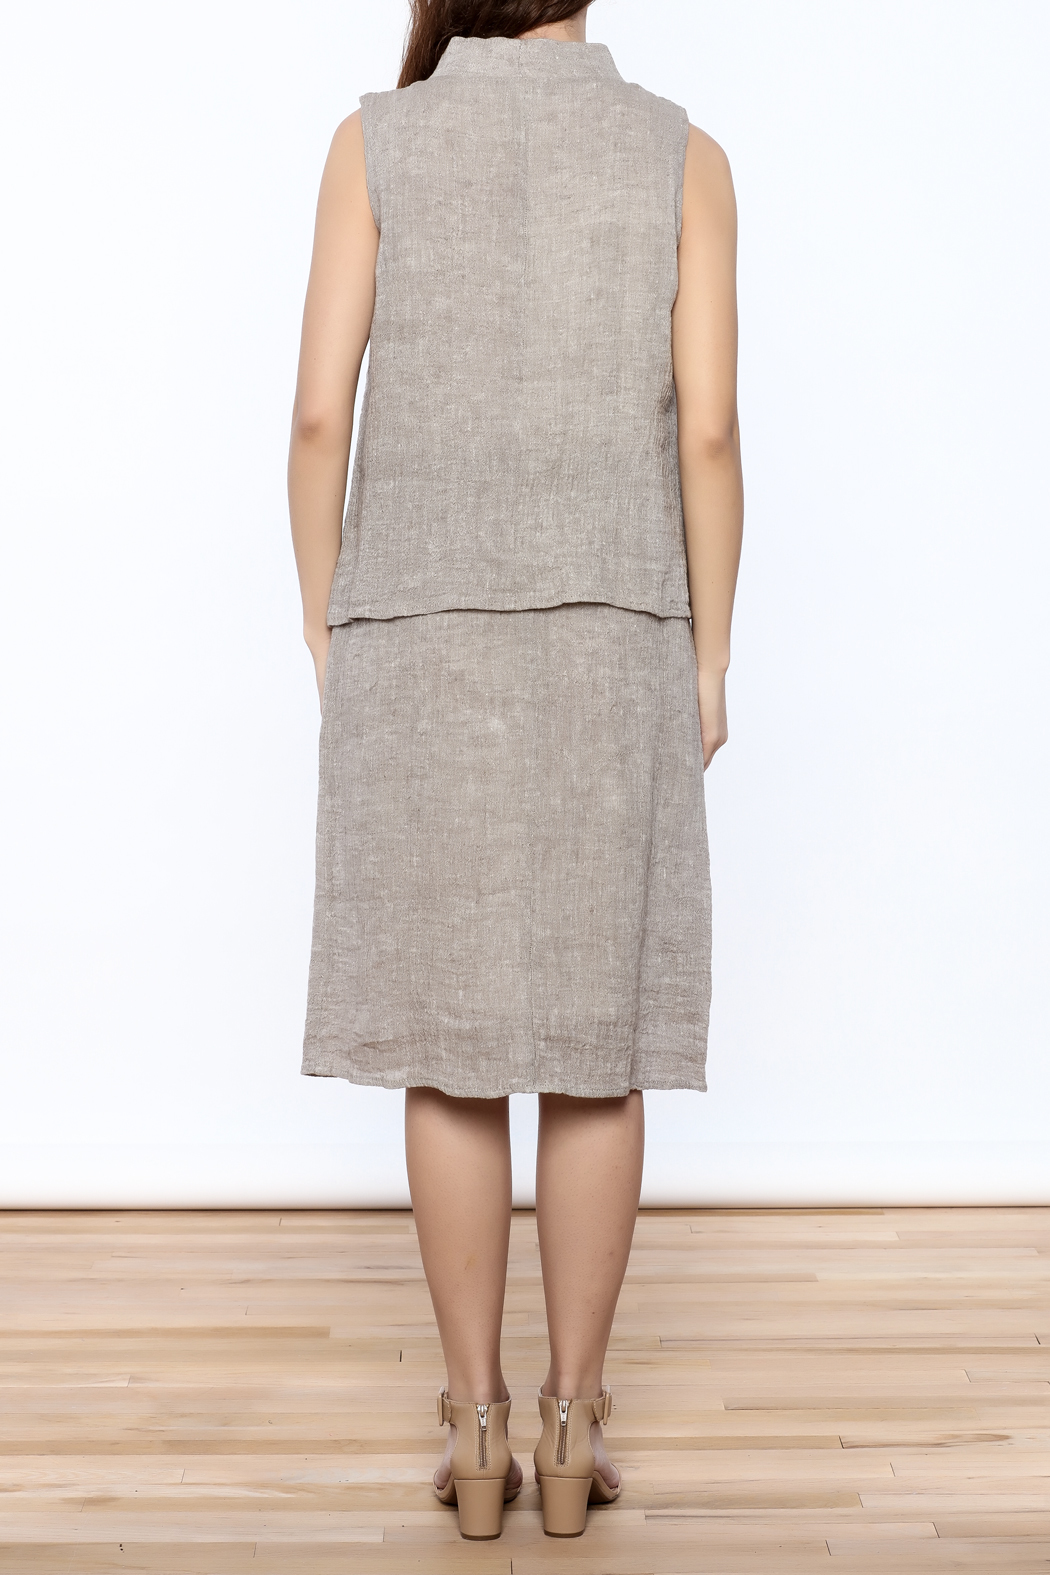 Ronen Chen Asymmetrical Linen Dress - Back Cropped Image